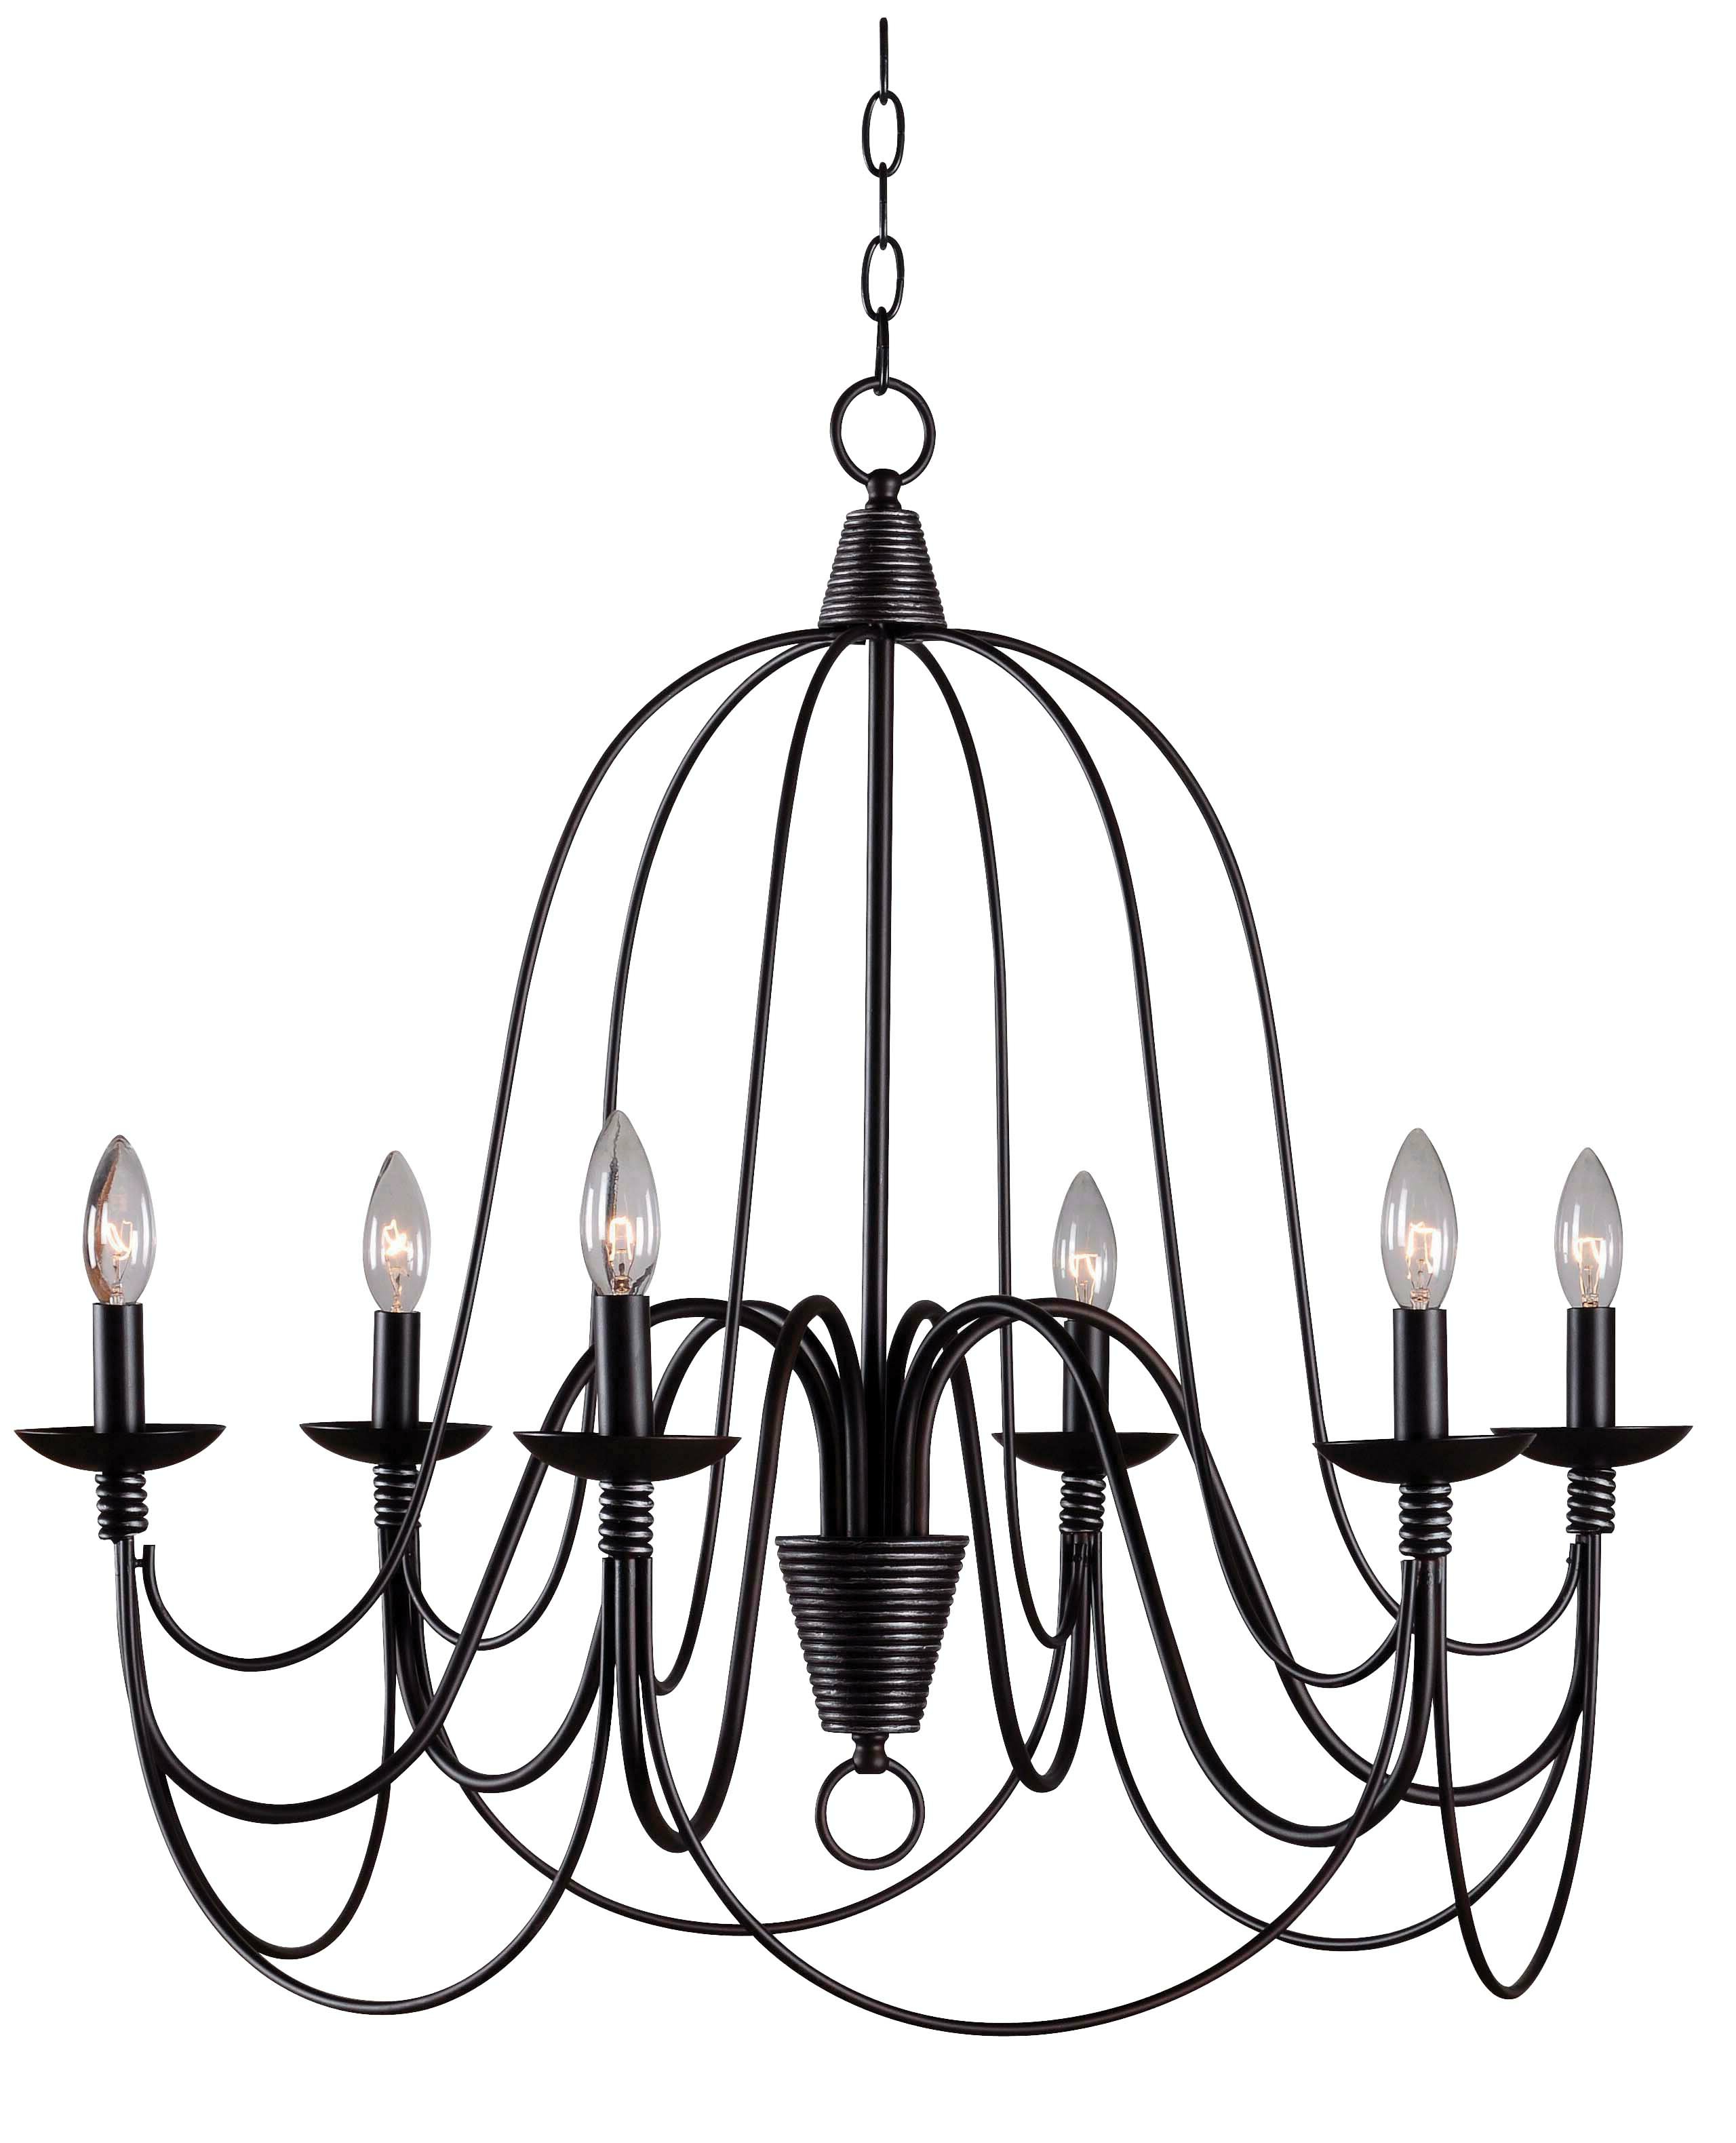 Best And Newest Diaz 6 Light Candle Style Chandeliers Throughout Kollman 6 Light Candle Style Chandelier (View 7 of 25)